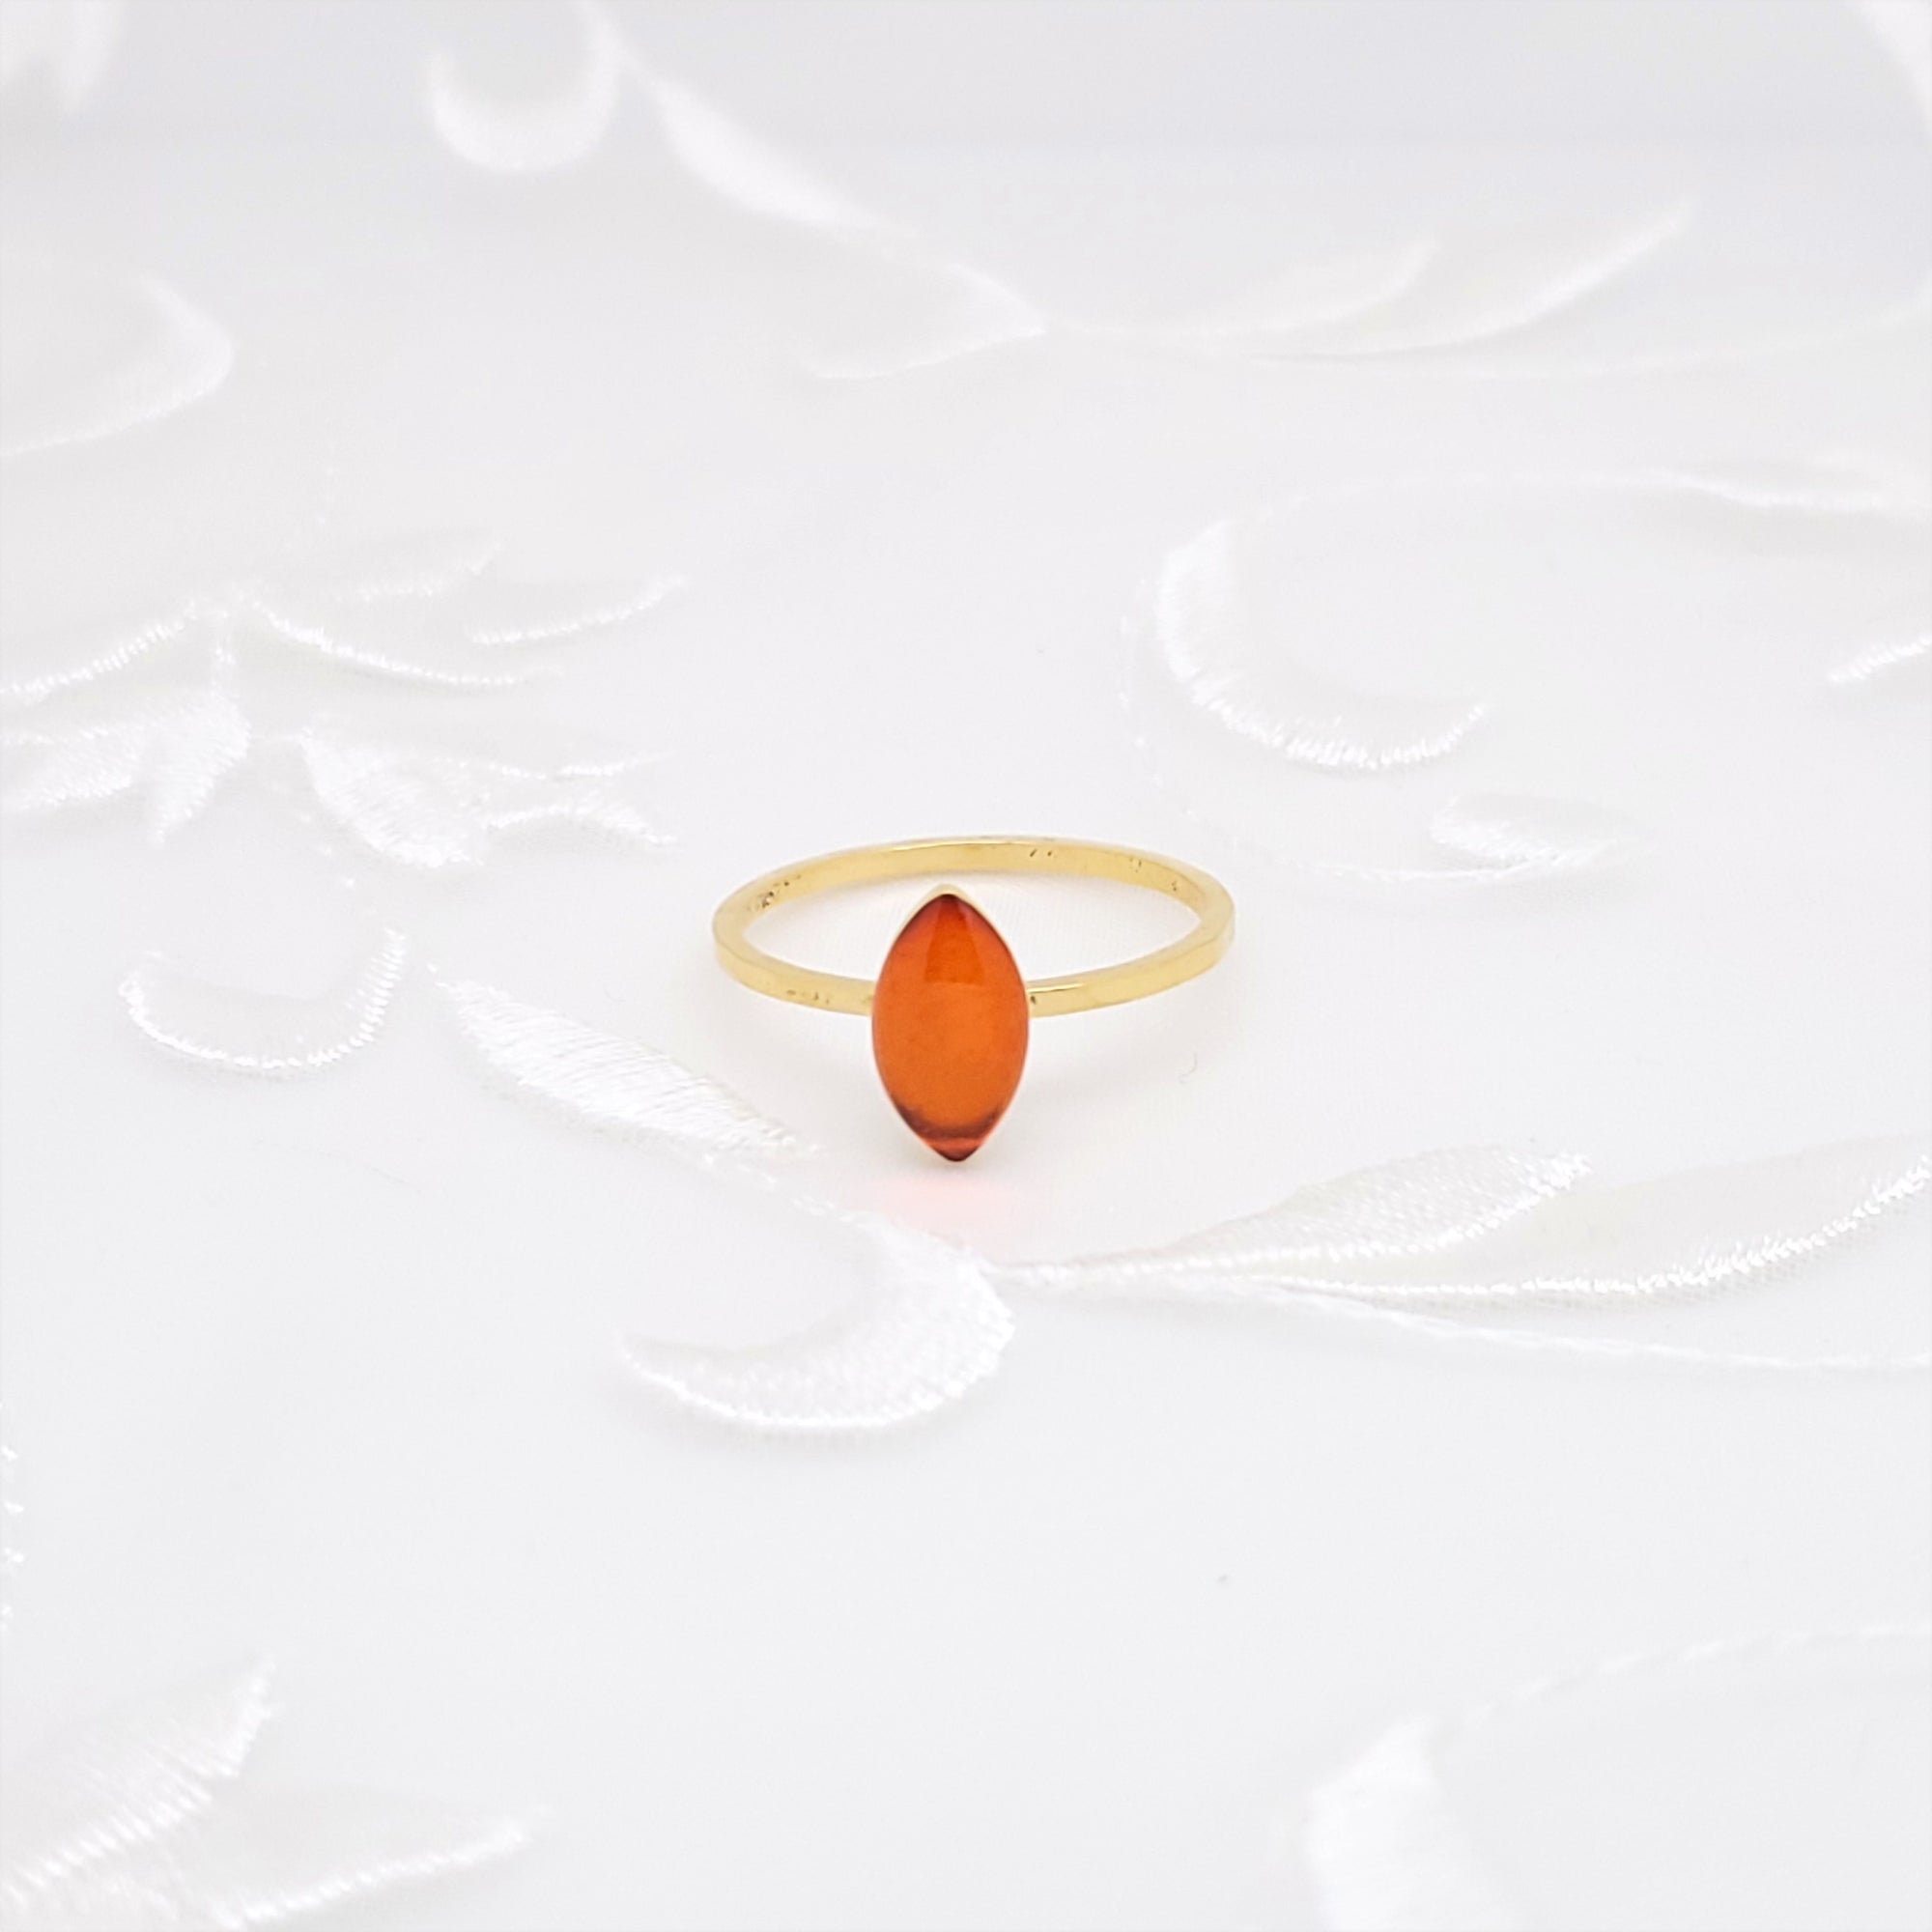 Antique Gold Navette Ring with Transparent Orange Resin